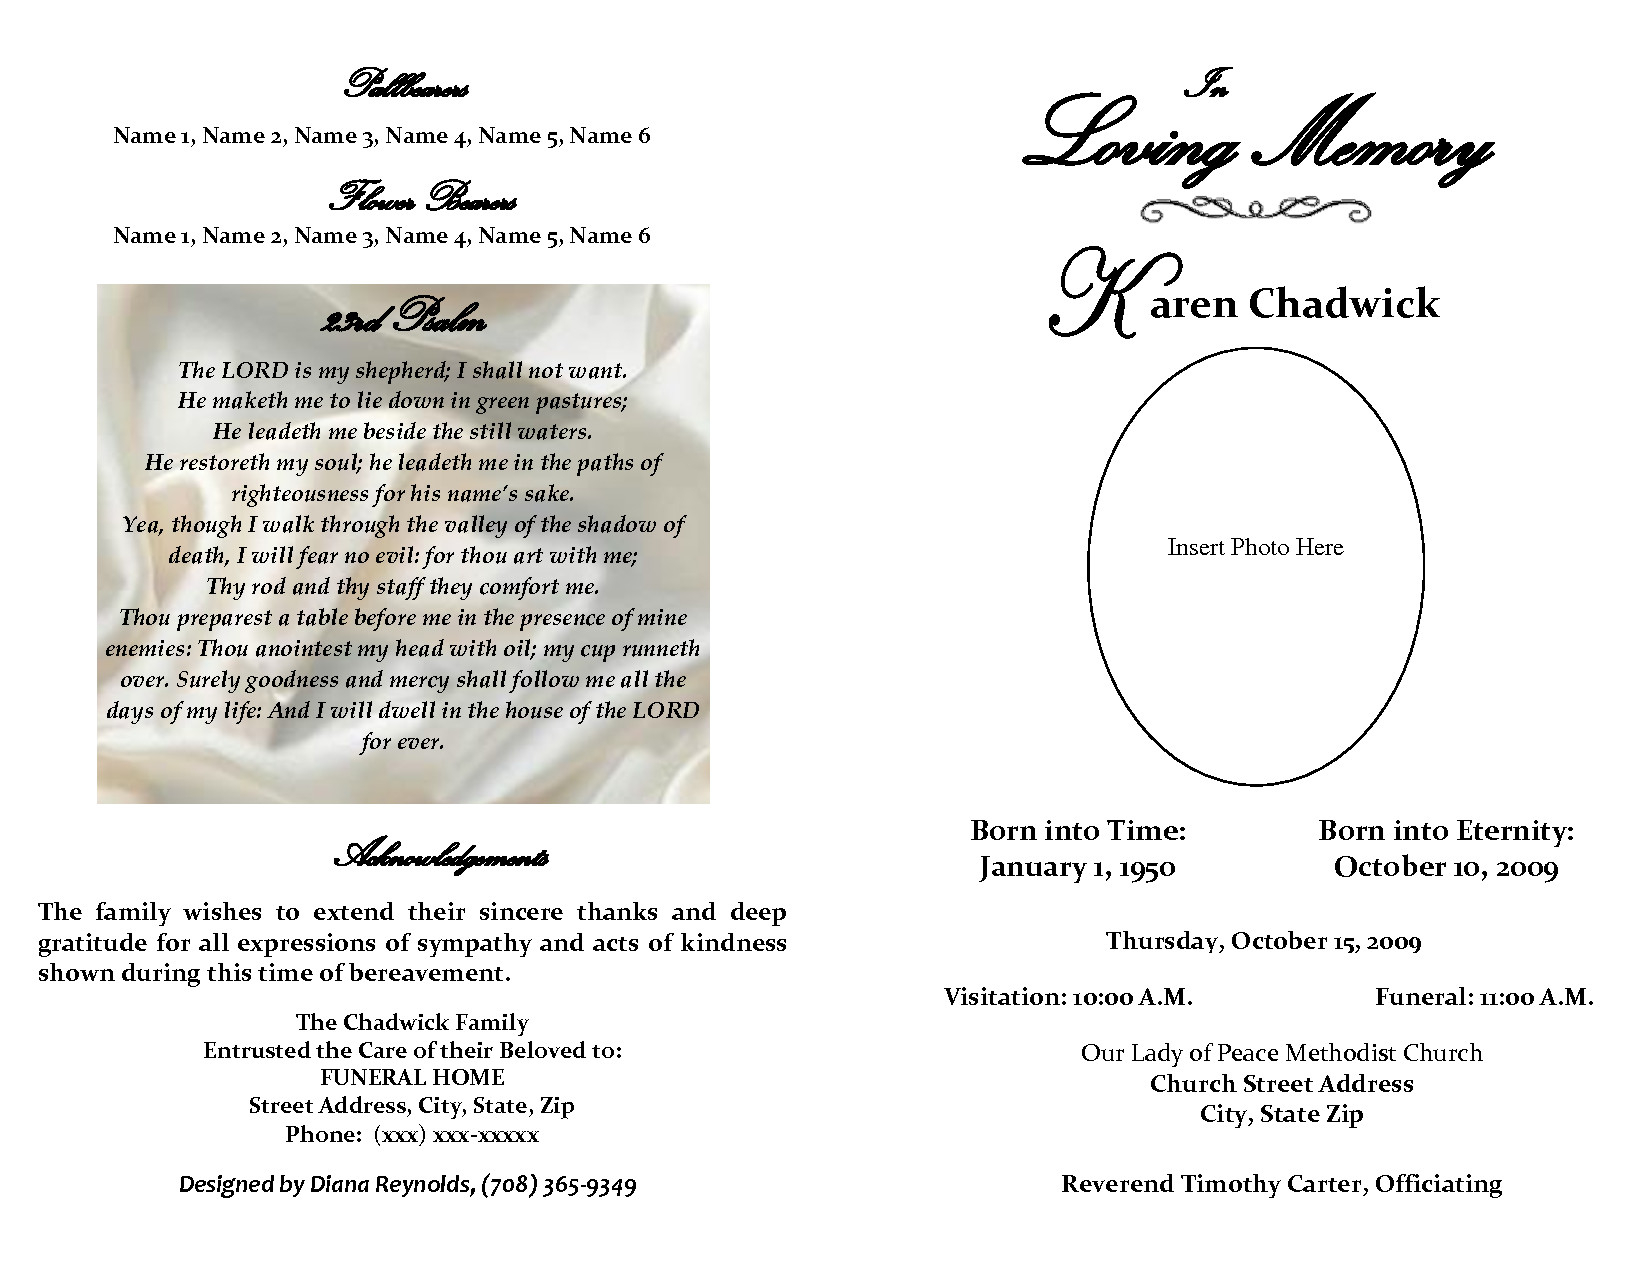 Lovely Fill In The Blank Obituary Template — Jkwd - Jkwd - Free Printable Obituary